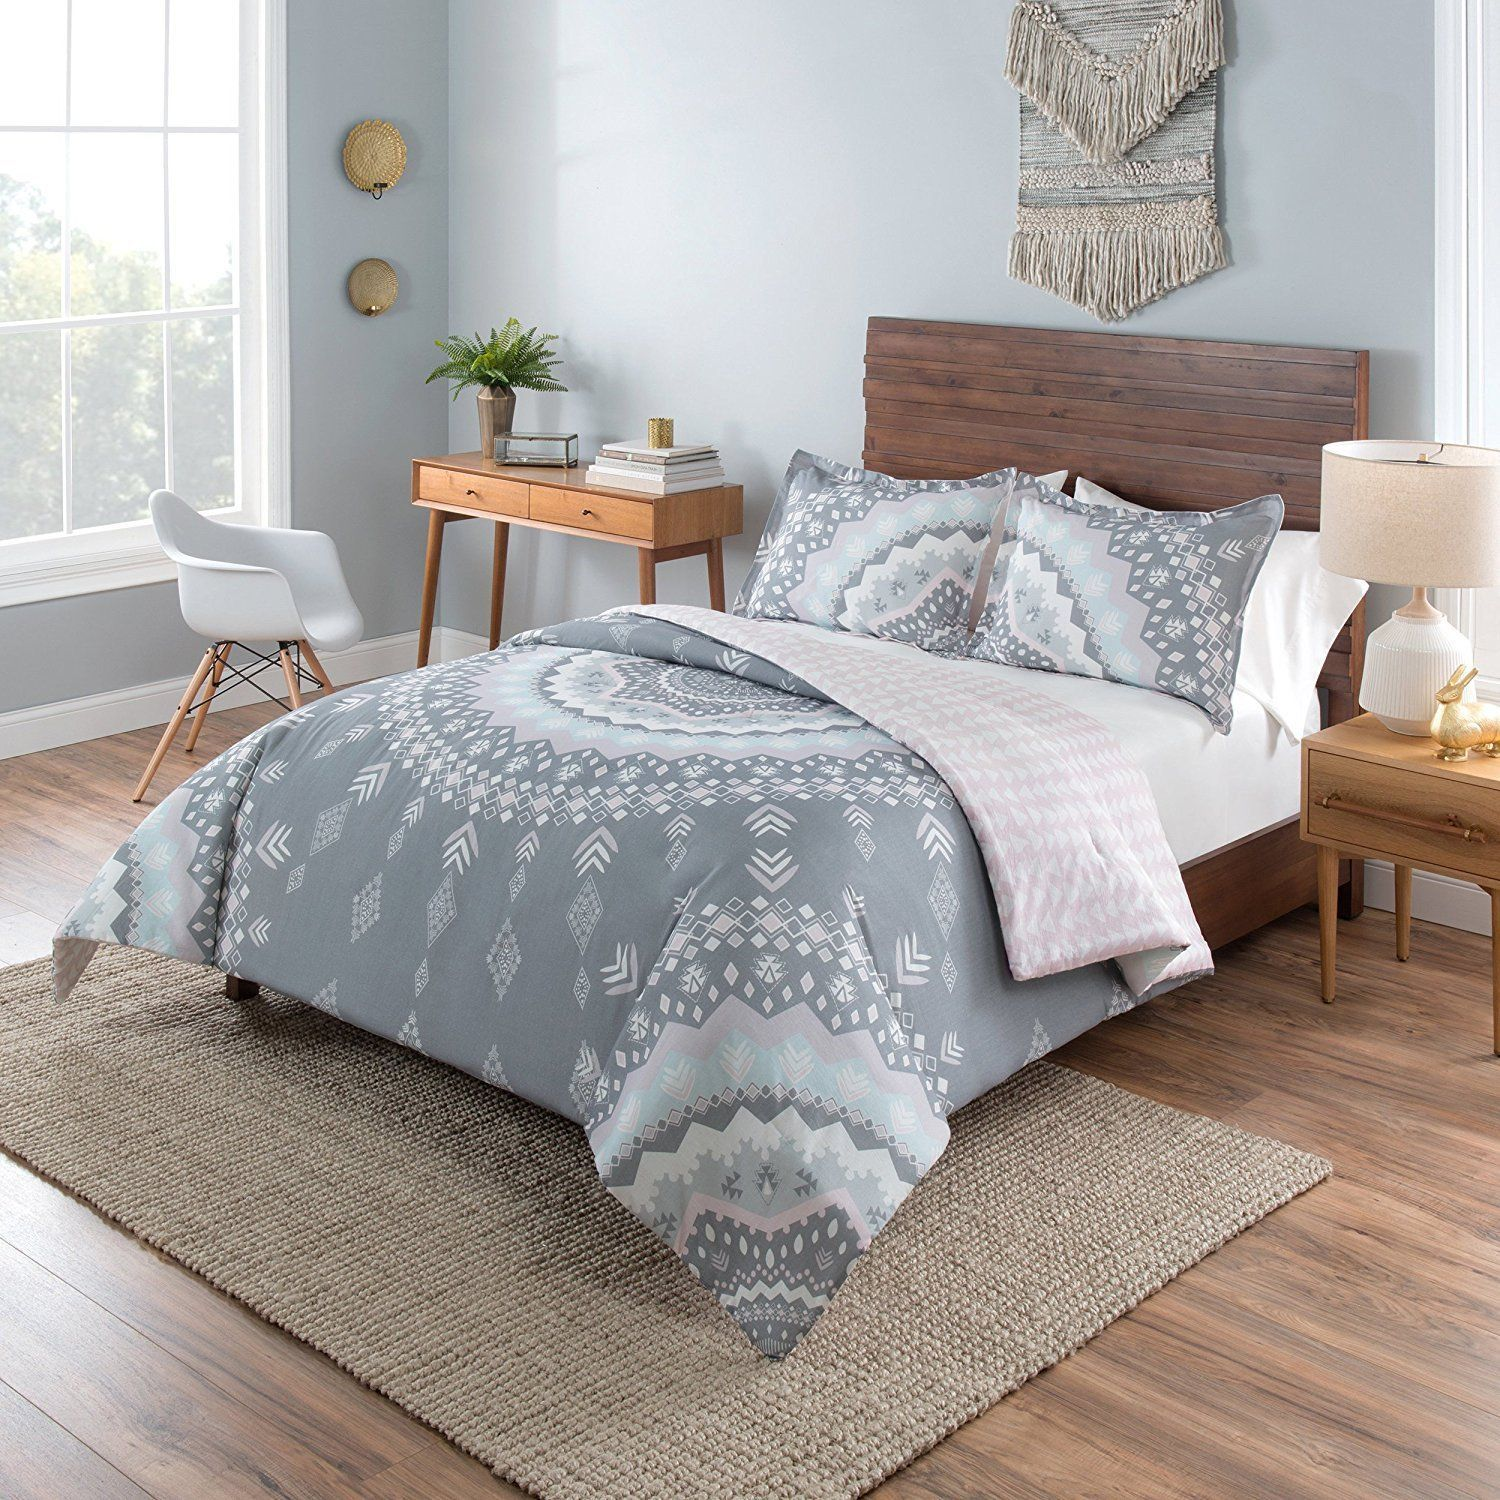 Express Your Individuality With Boho Home Decor Pink Comforter